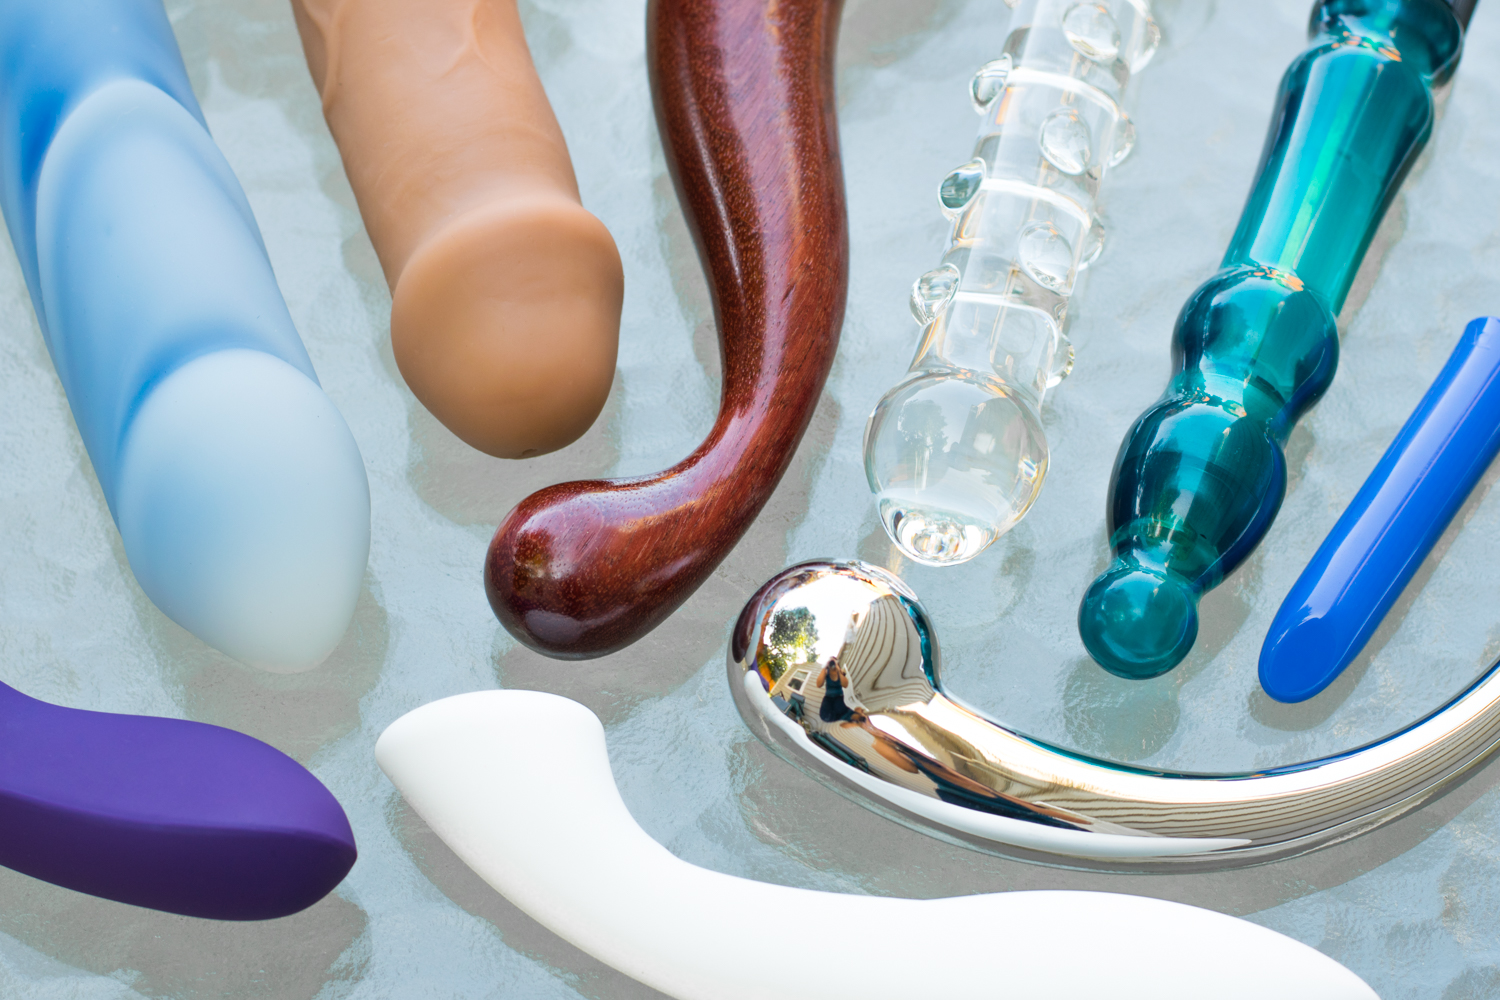 Body Safe Sex Toy Materials Silicone Wood Stainless Steel Glass Plastic By Epiphora